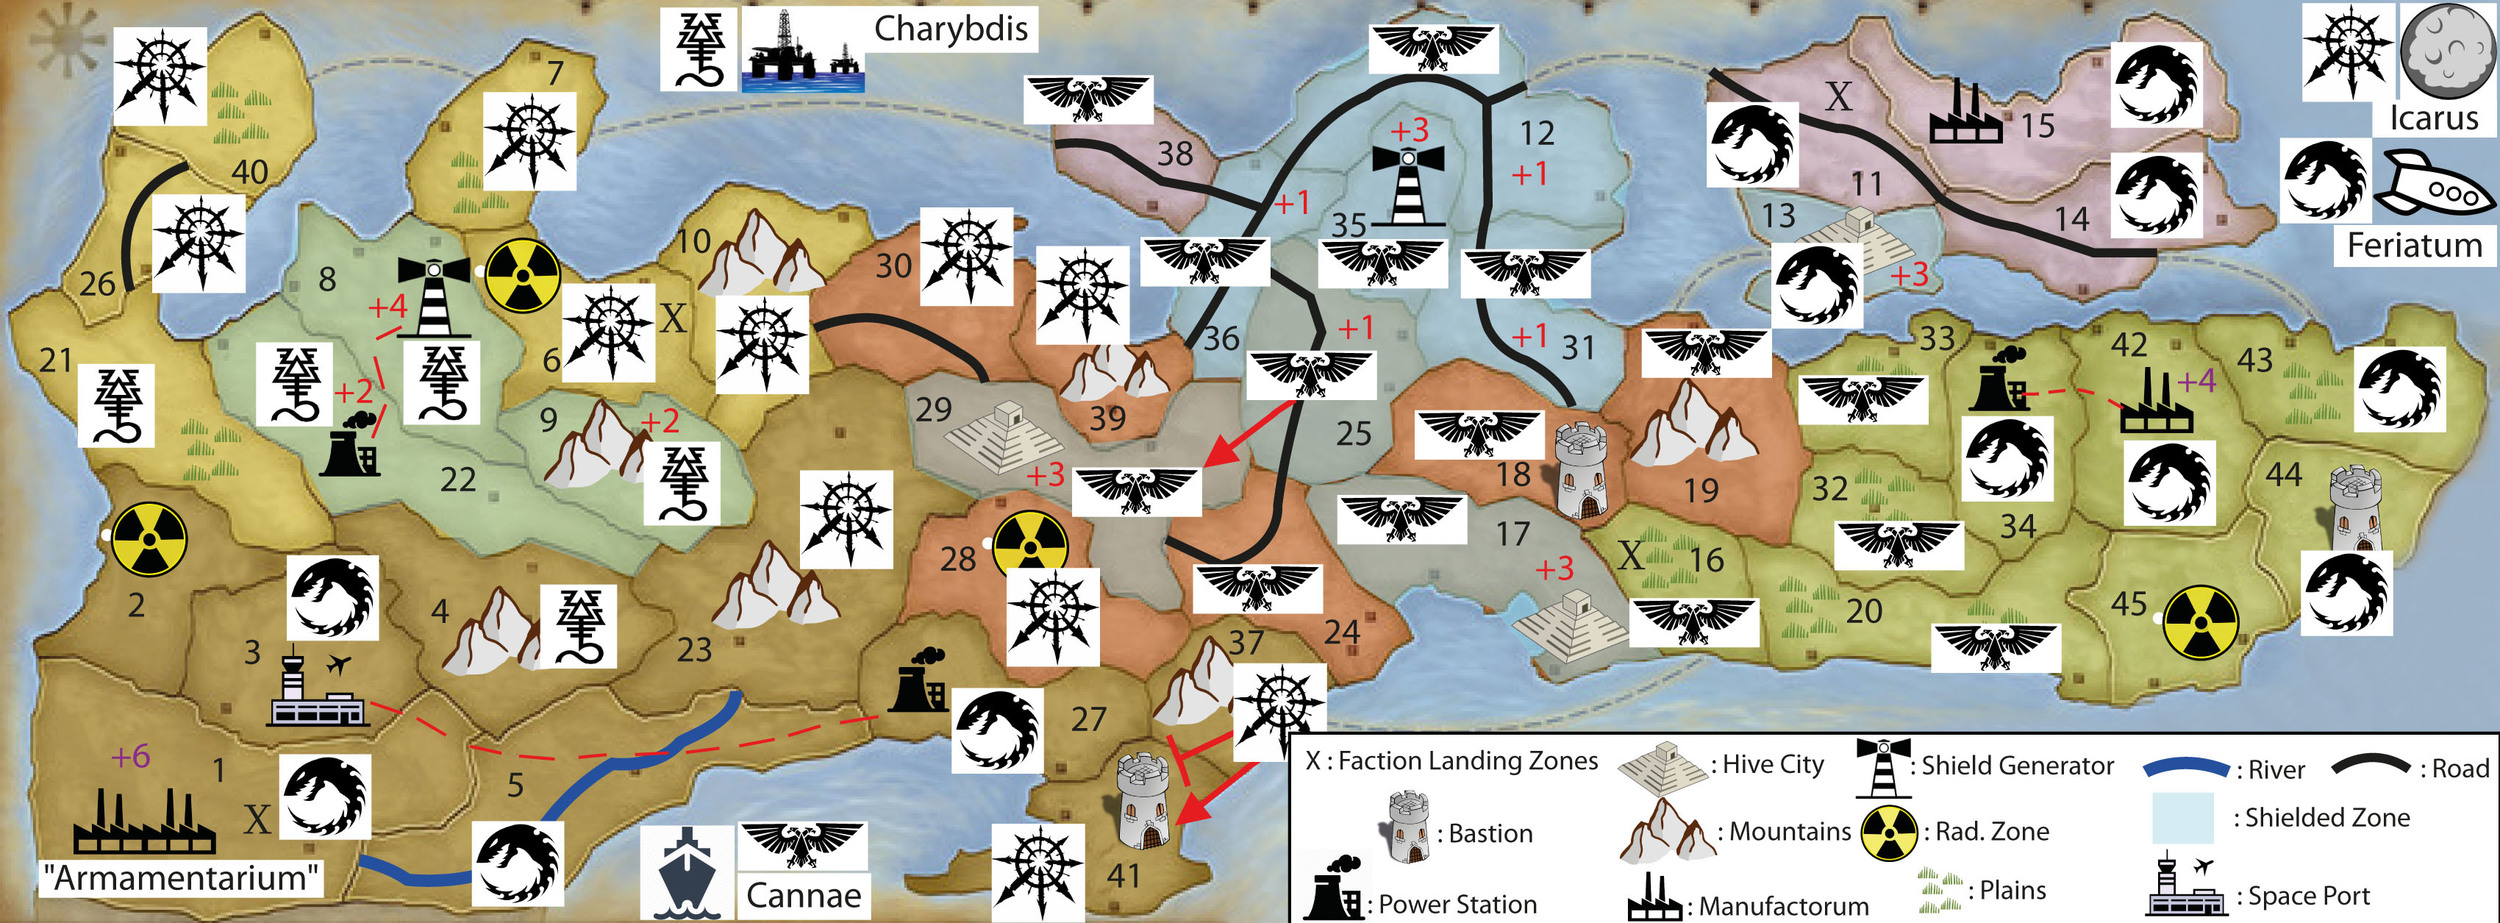 WINTER CAMPAIGN - END OF TURN 23